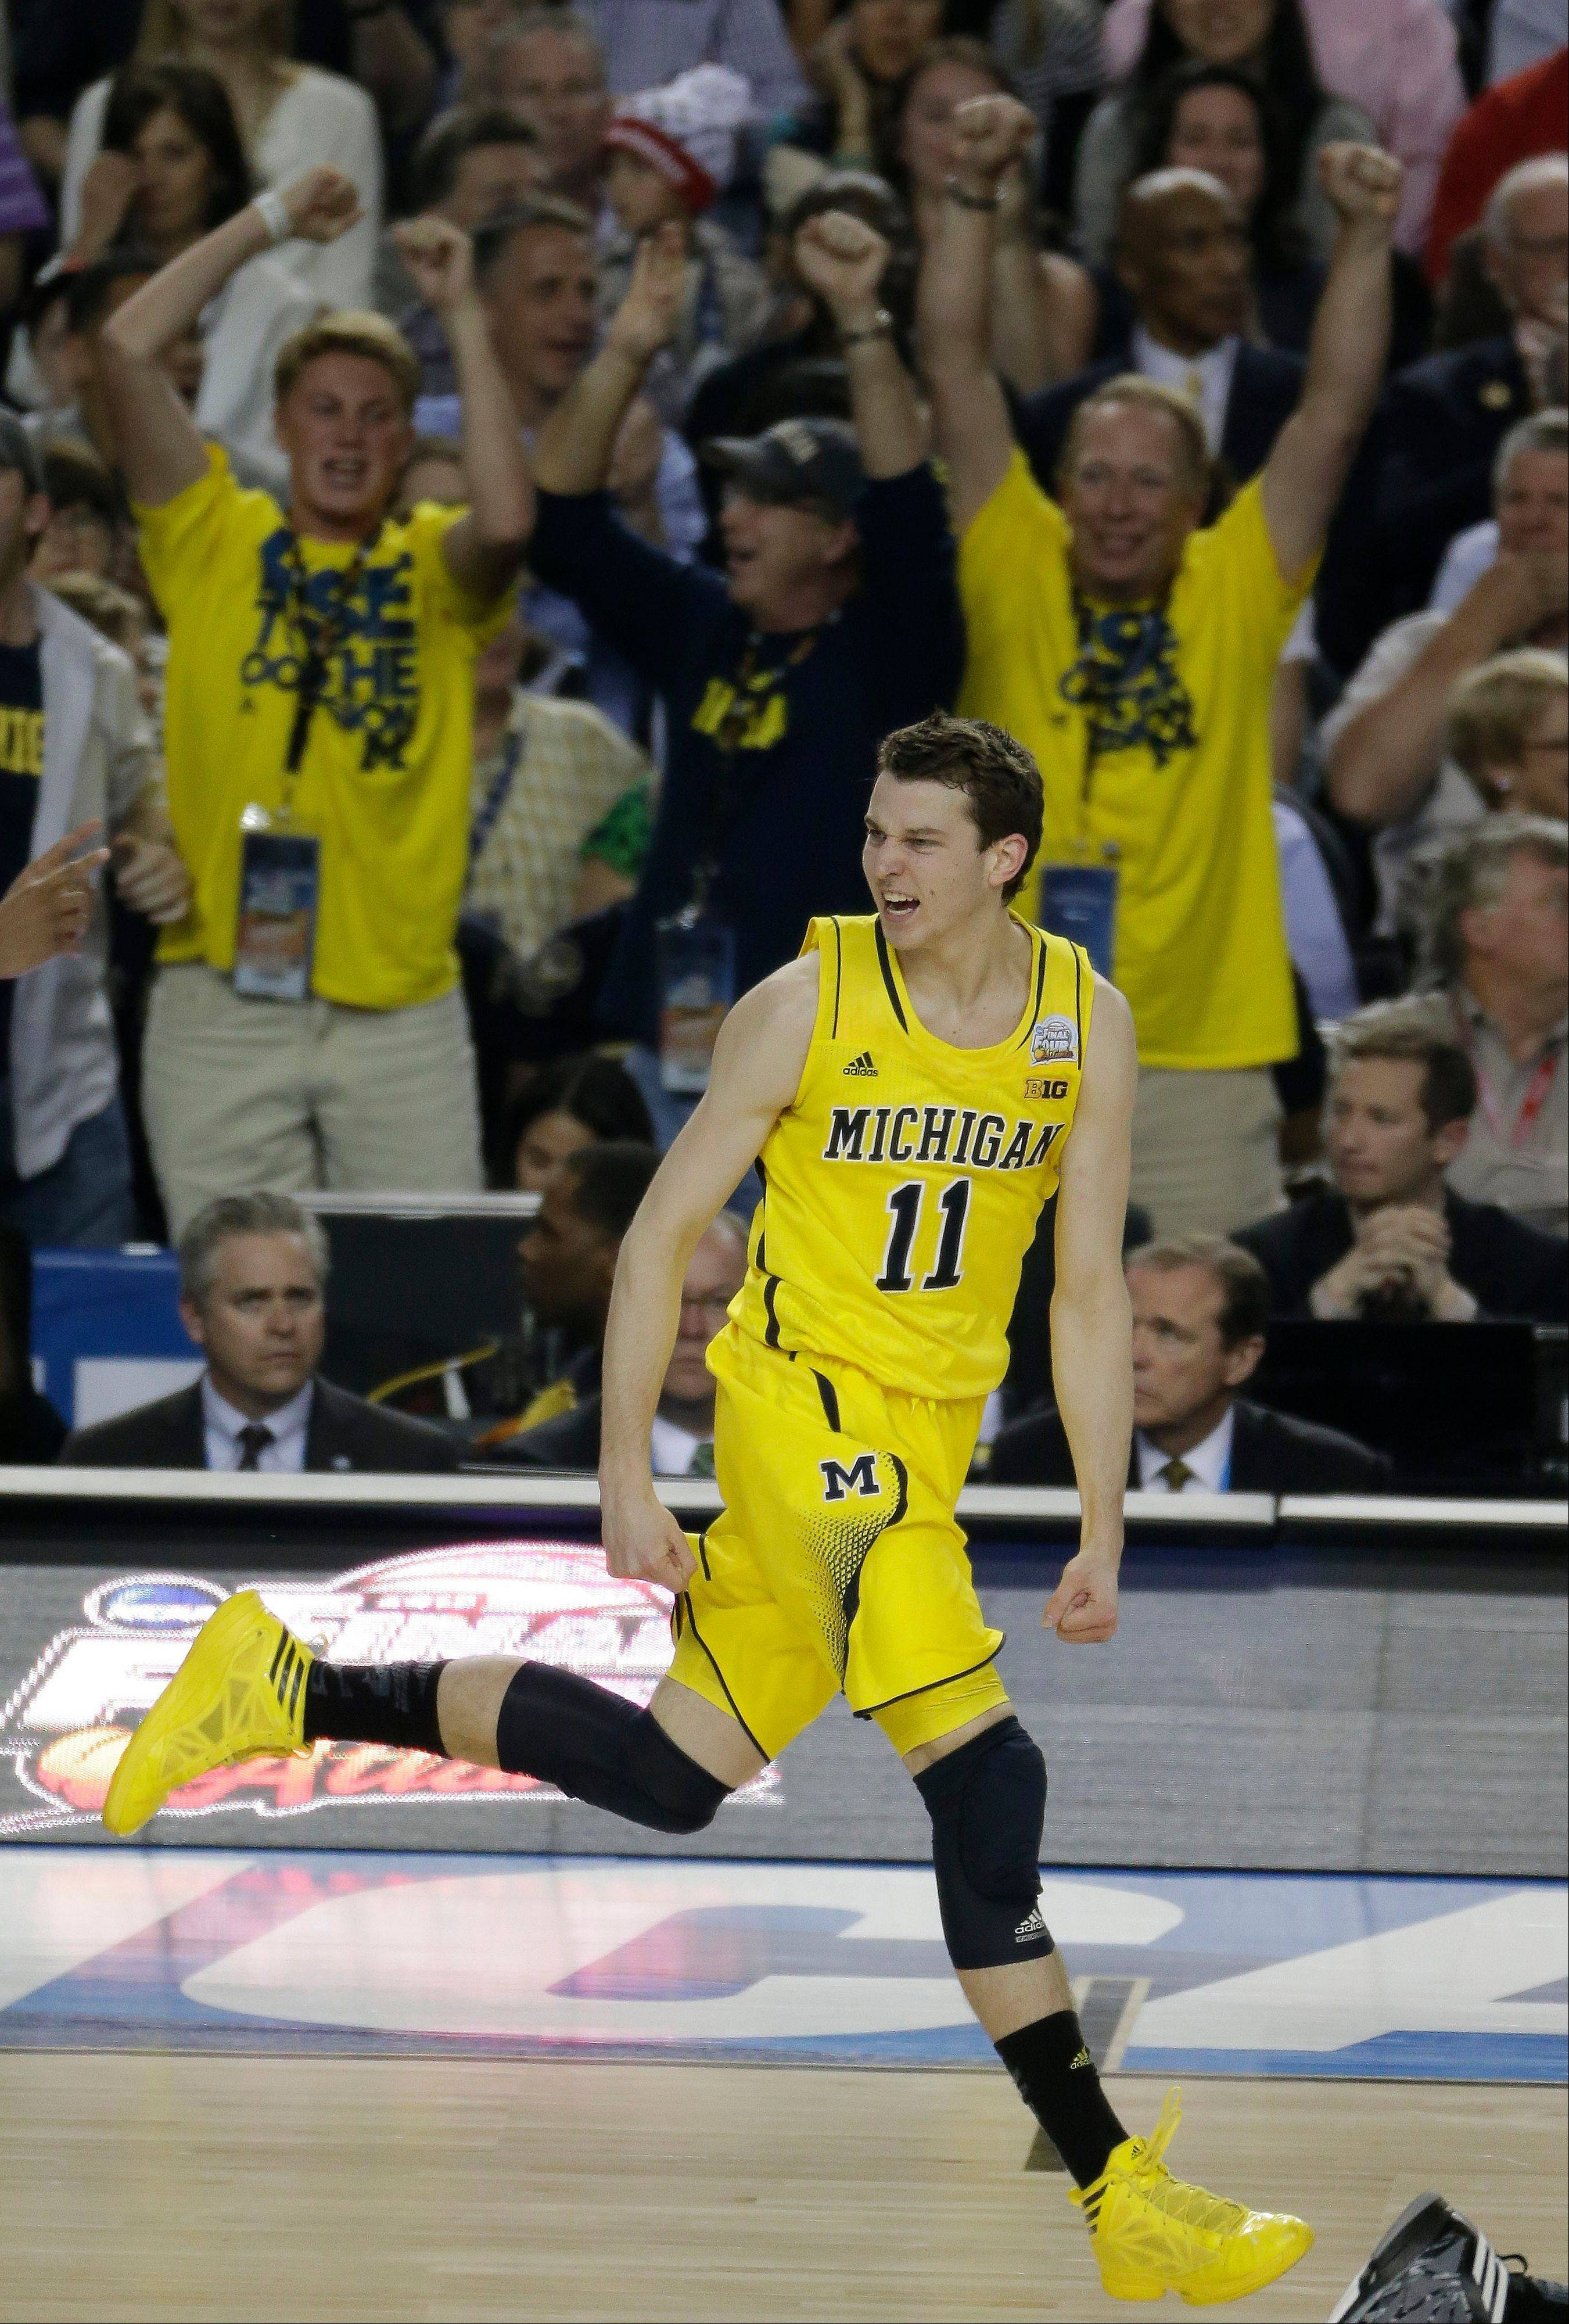 Michigan guard Nik Stauskas (11) reacts to a goal against the Louisville during the first half of the NCAA Final Four tournament college basketball championship game Monday, April 8, 2013, in Atlanta.